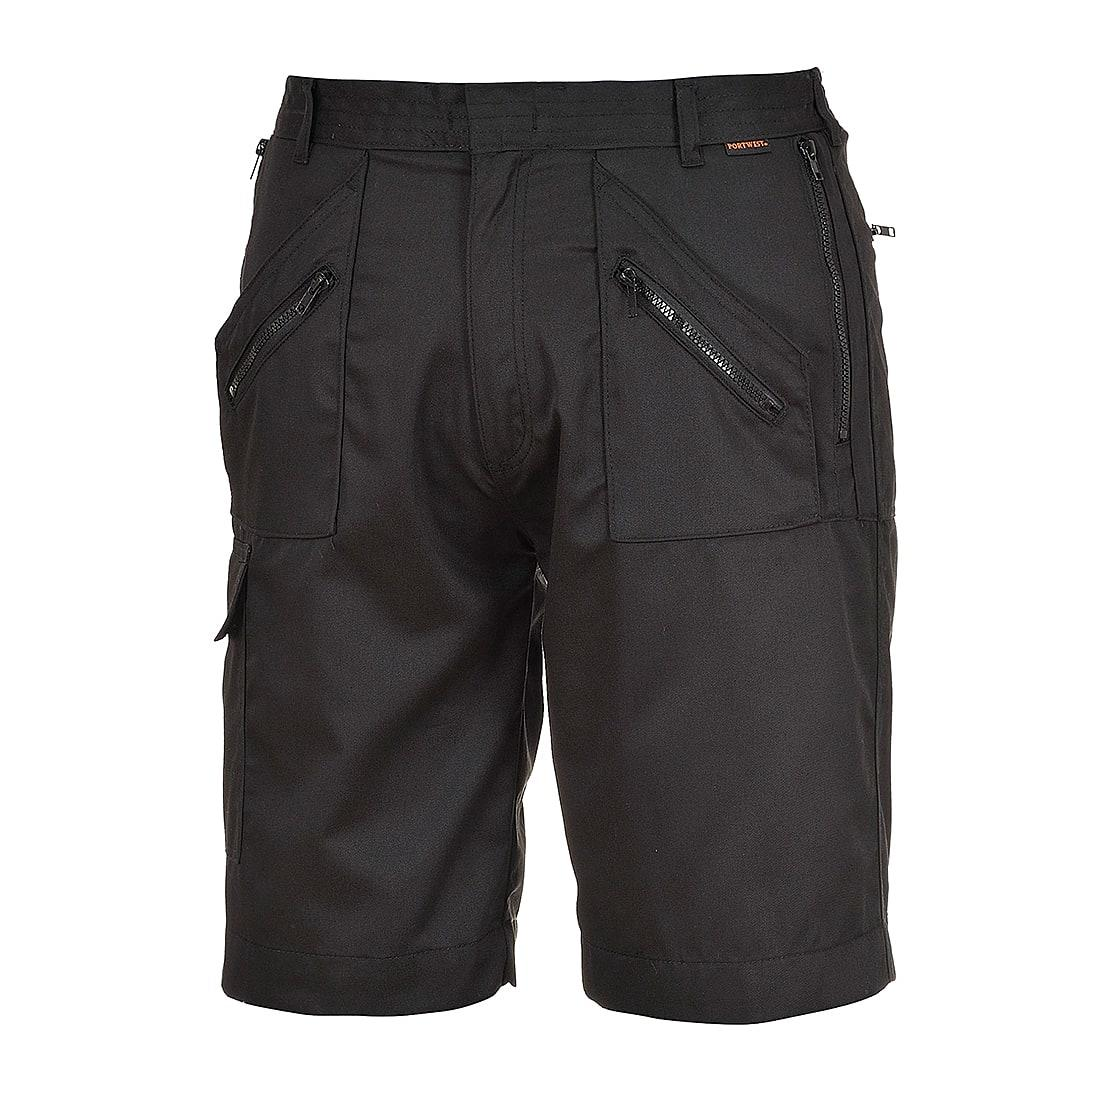 Portwest Action Shorts in Black (Product Code: S889)